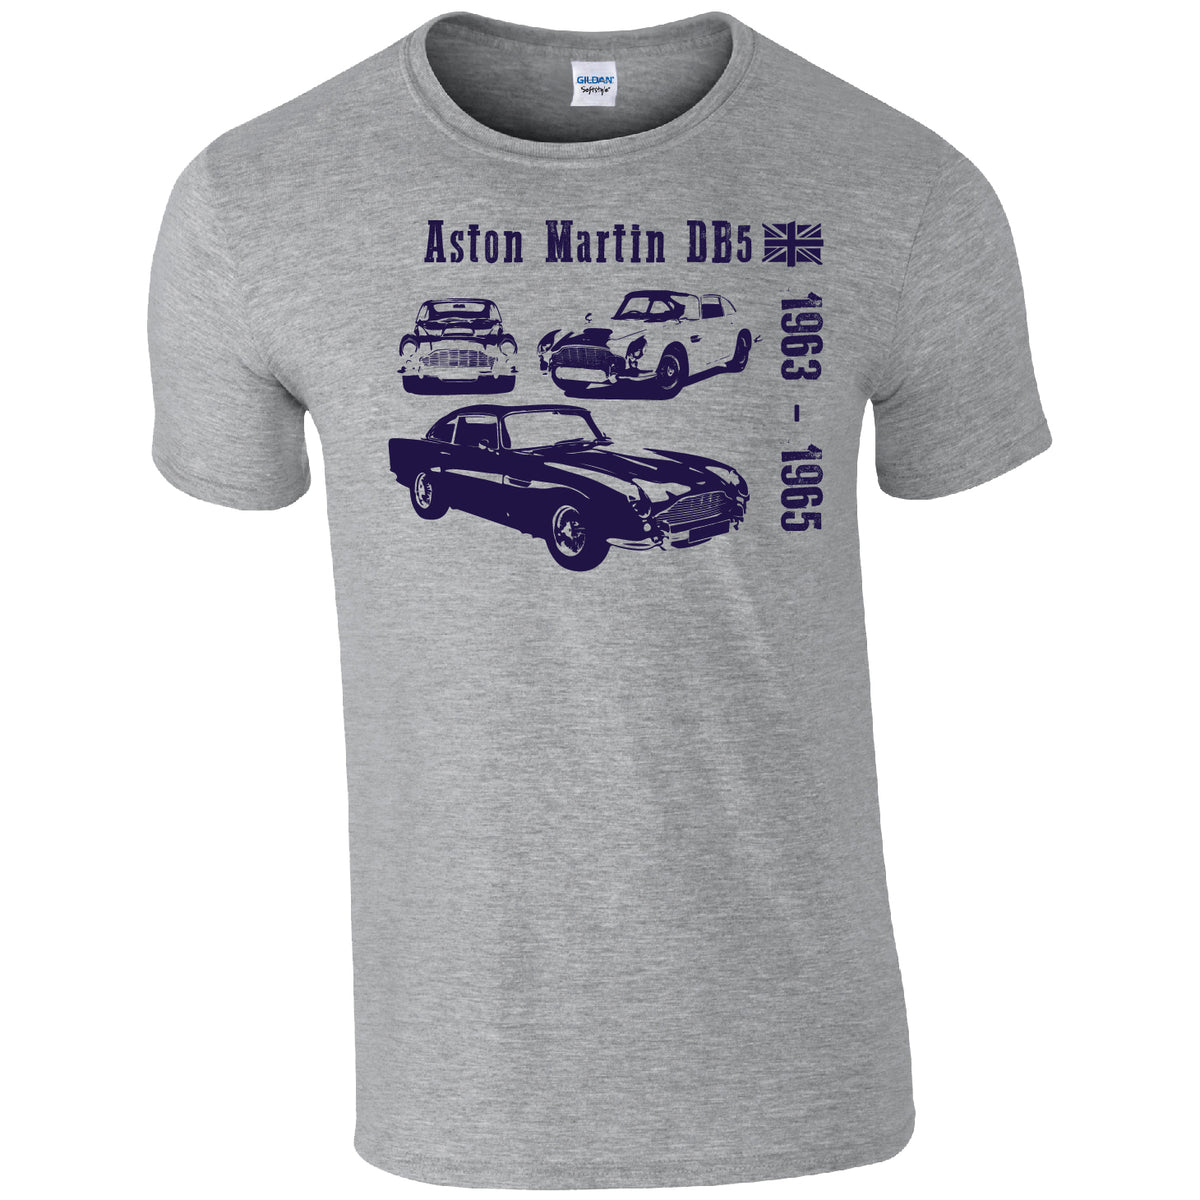 aston martin db5 classic car t-shirt – got2haveone